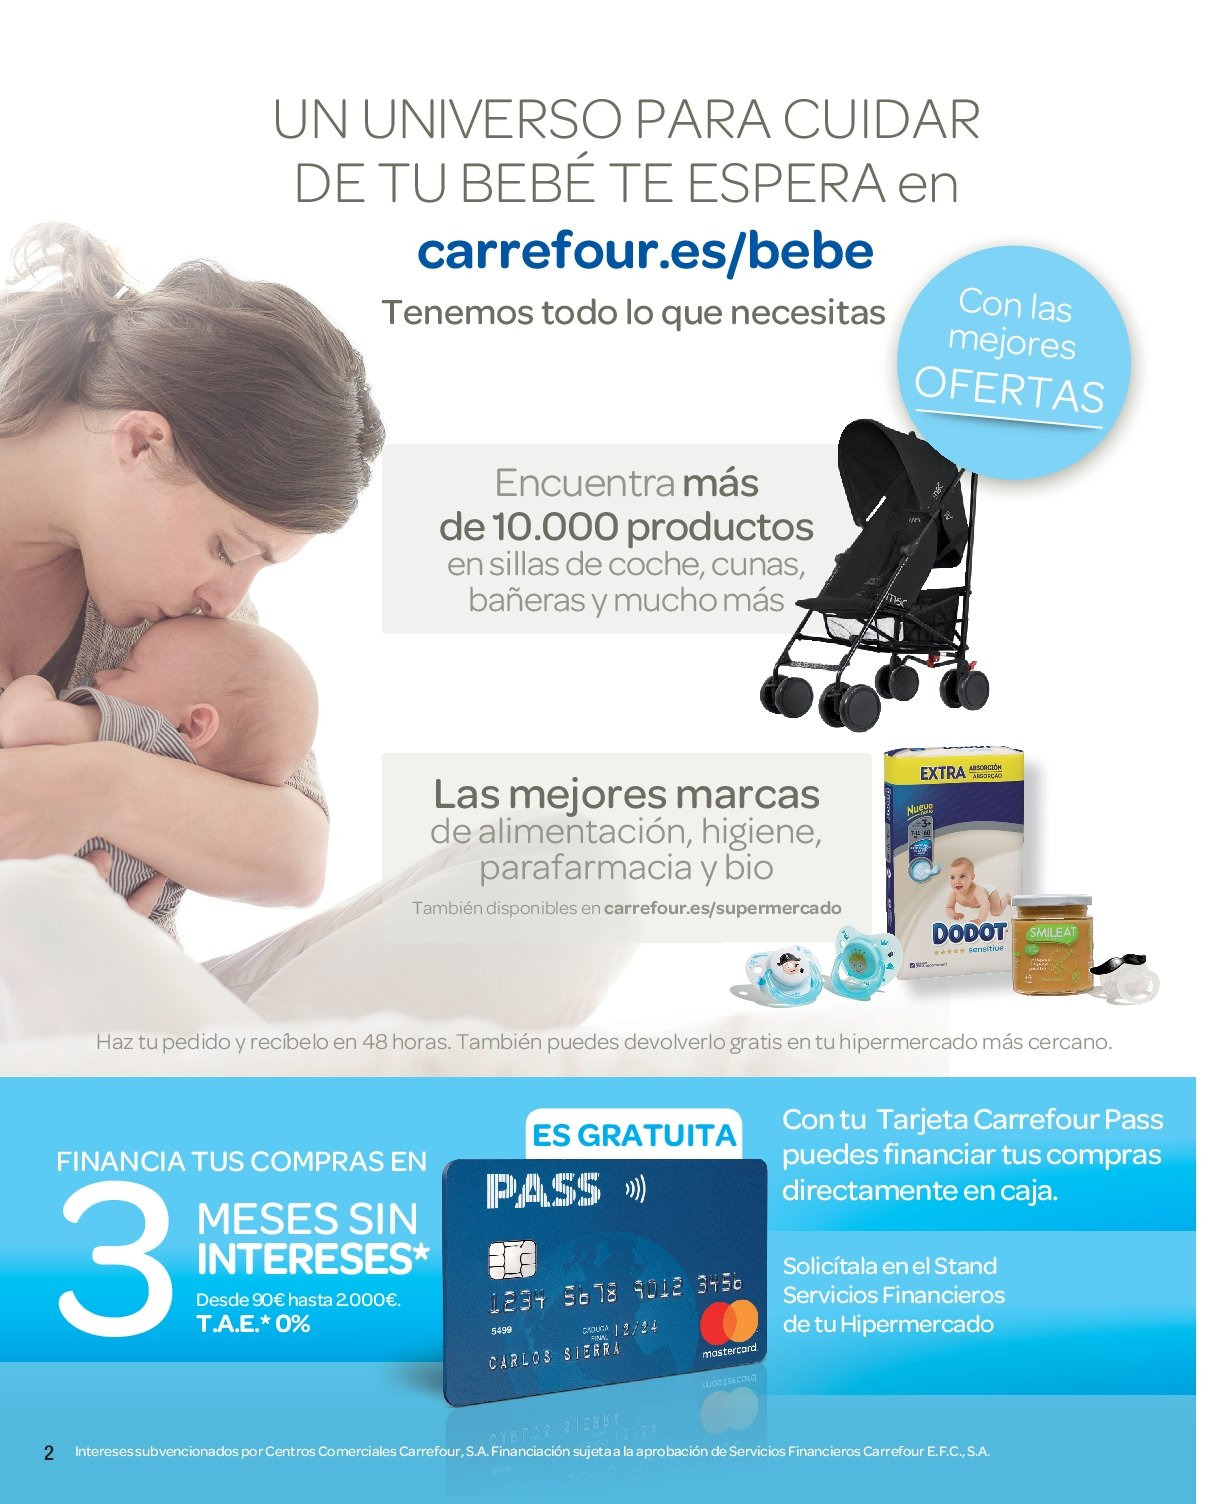 Folleto actual Carrefour - 25.1.2019 - 24.2.2019 - Ventas - bebé 2e2193a465dd